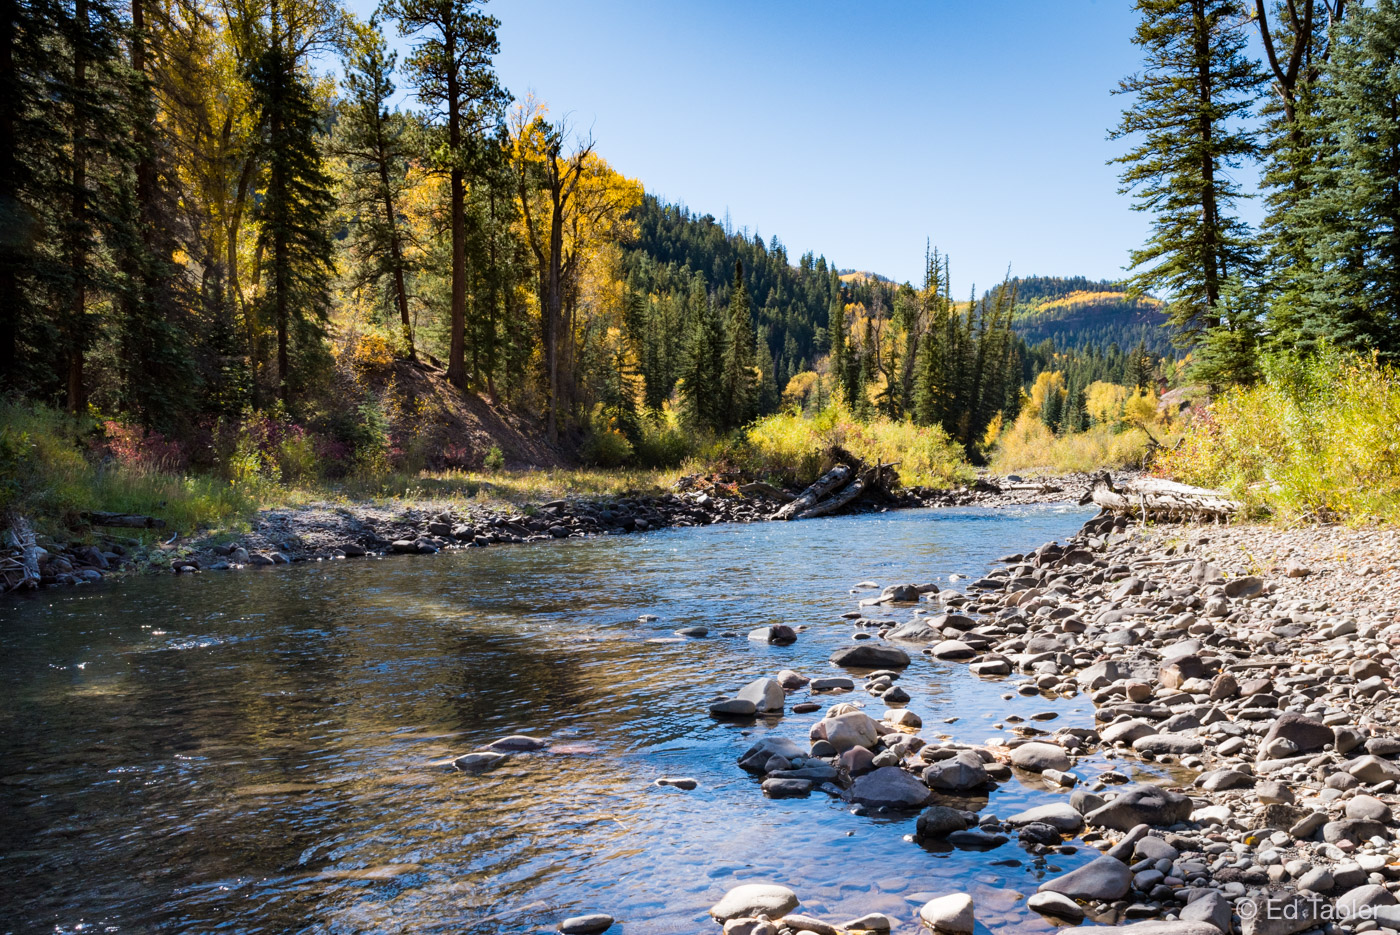 Autumn morning alongCrystal River south of Carbondale, Colorado.